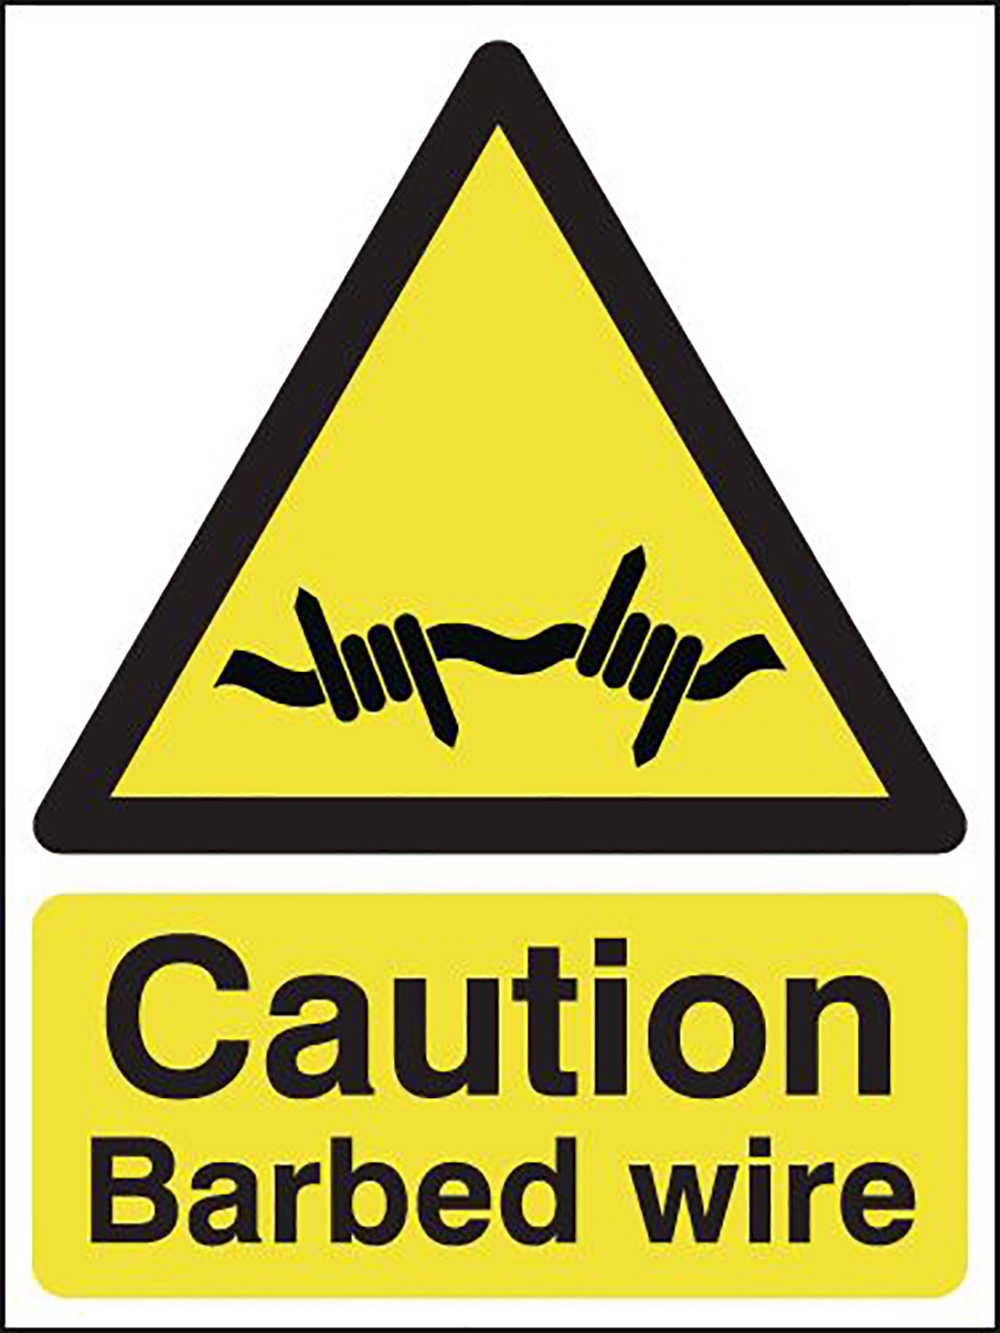 Caution Barbed Wire 210x148mm 1.2mm Rigid Plastic Safety Sign